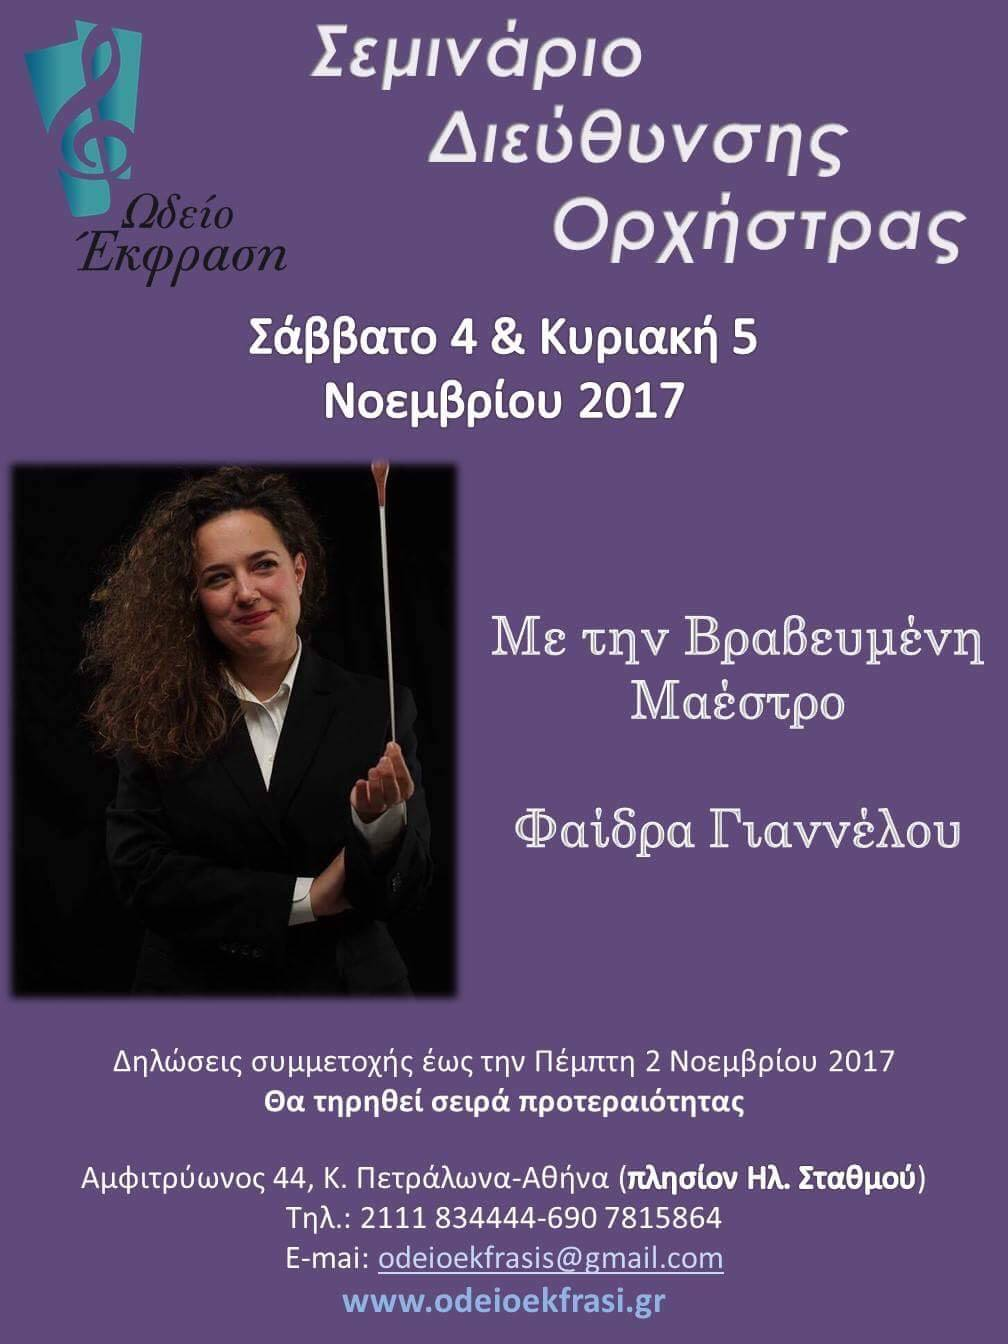 Conducting workshop in Athens